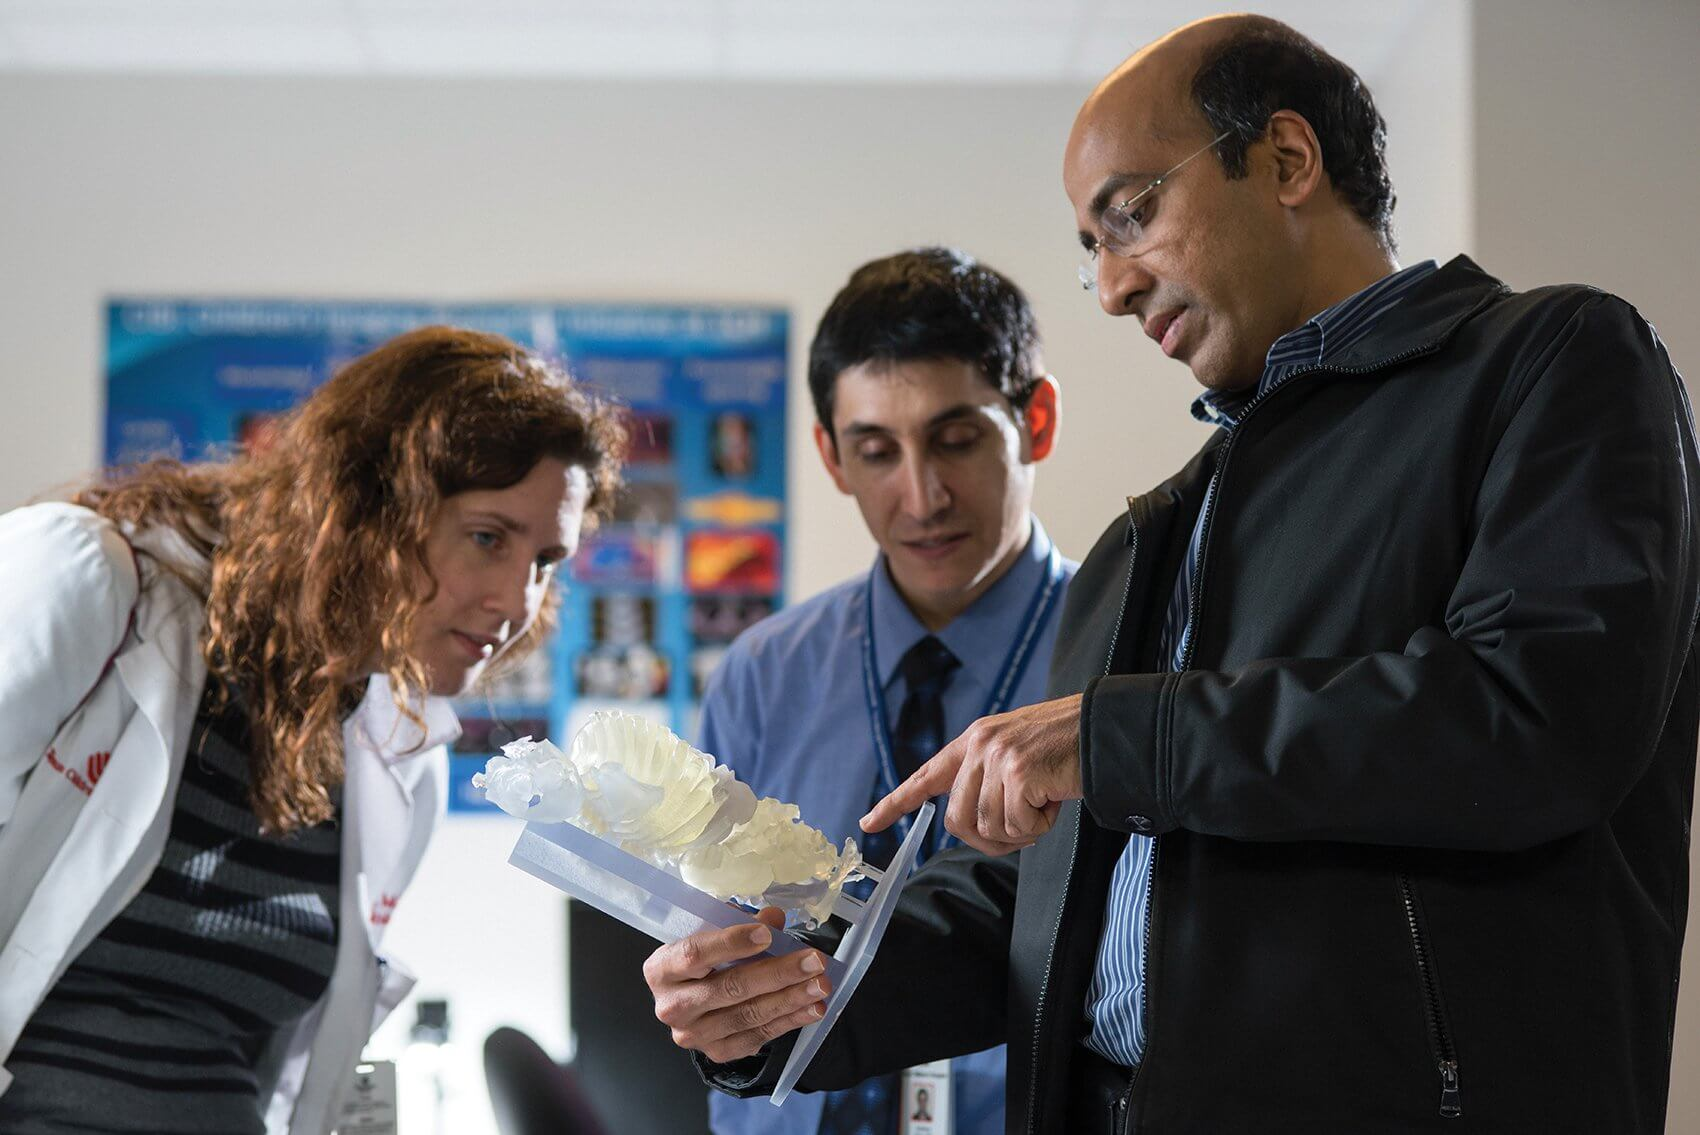 Rajesh Krishnamurthy, M.D., right, examines a 3-D printed model from a pair of conjoined twins. His team studied the model during surgical planning to get a more accurate understanding of the physiological structures and relationship of the organs. (Credit: Allen Kramer/Texas Children's Hospital)